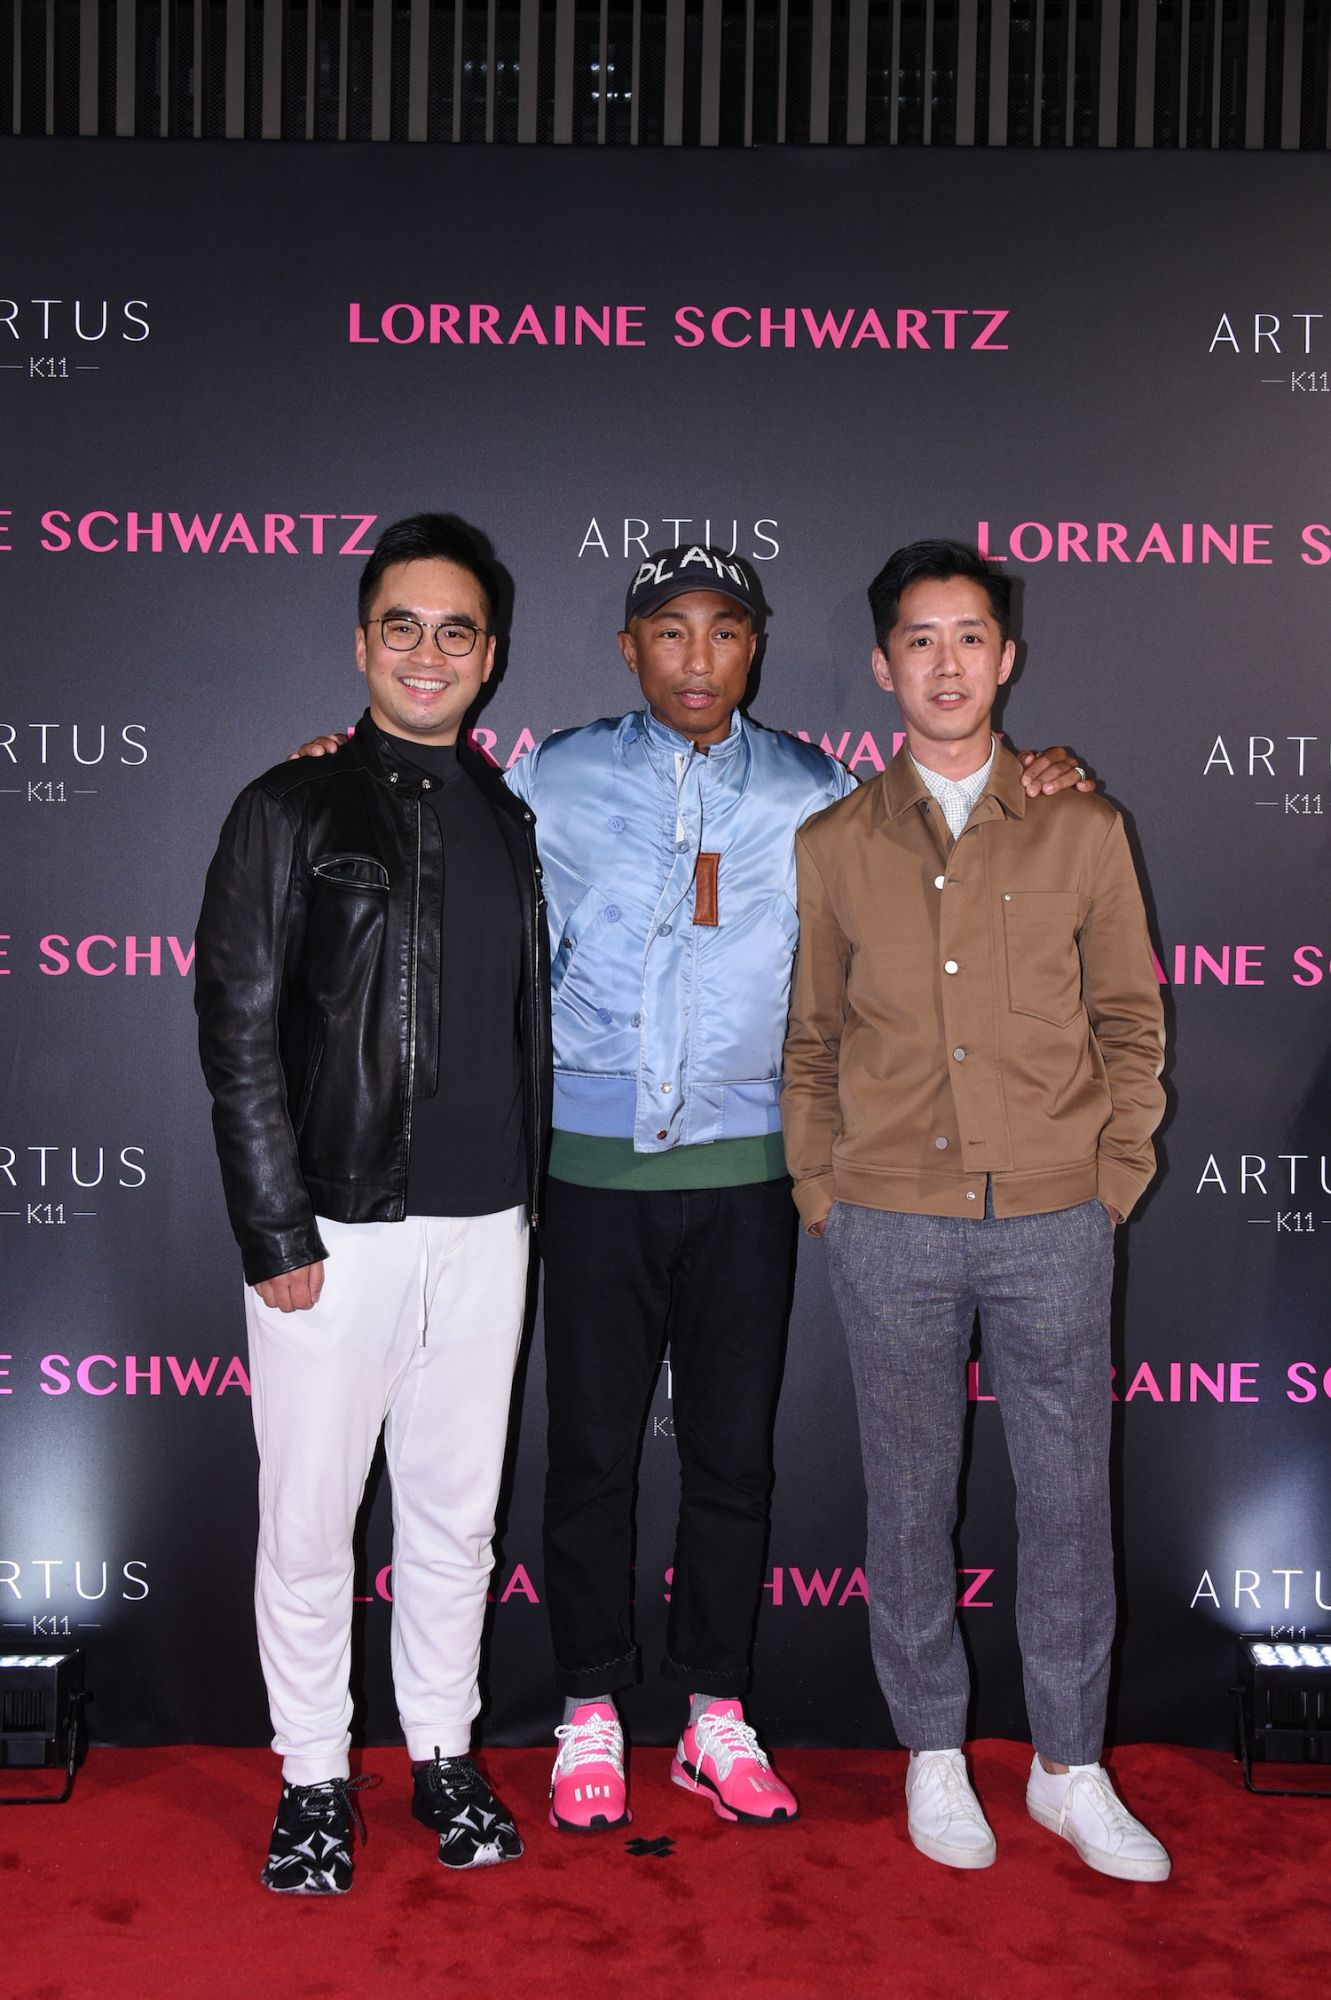 Adrian Cheng, Pharrell Williams, André Fu